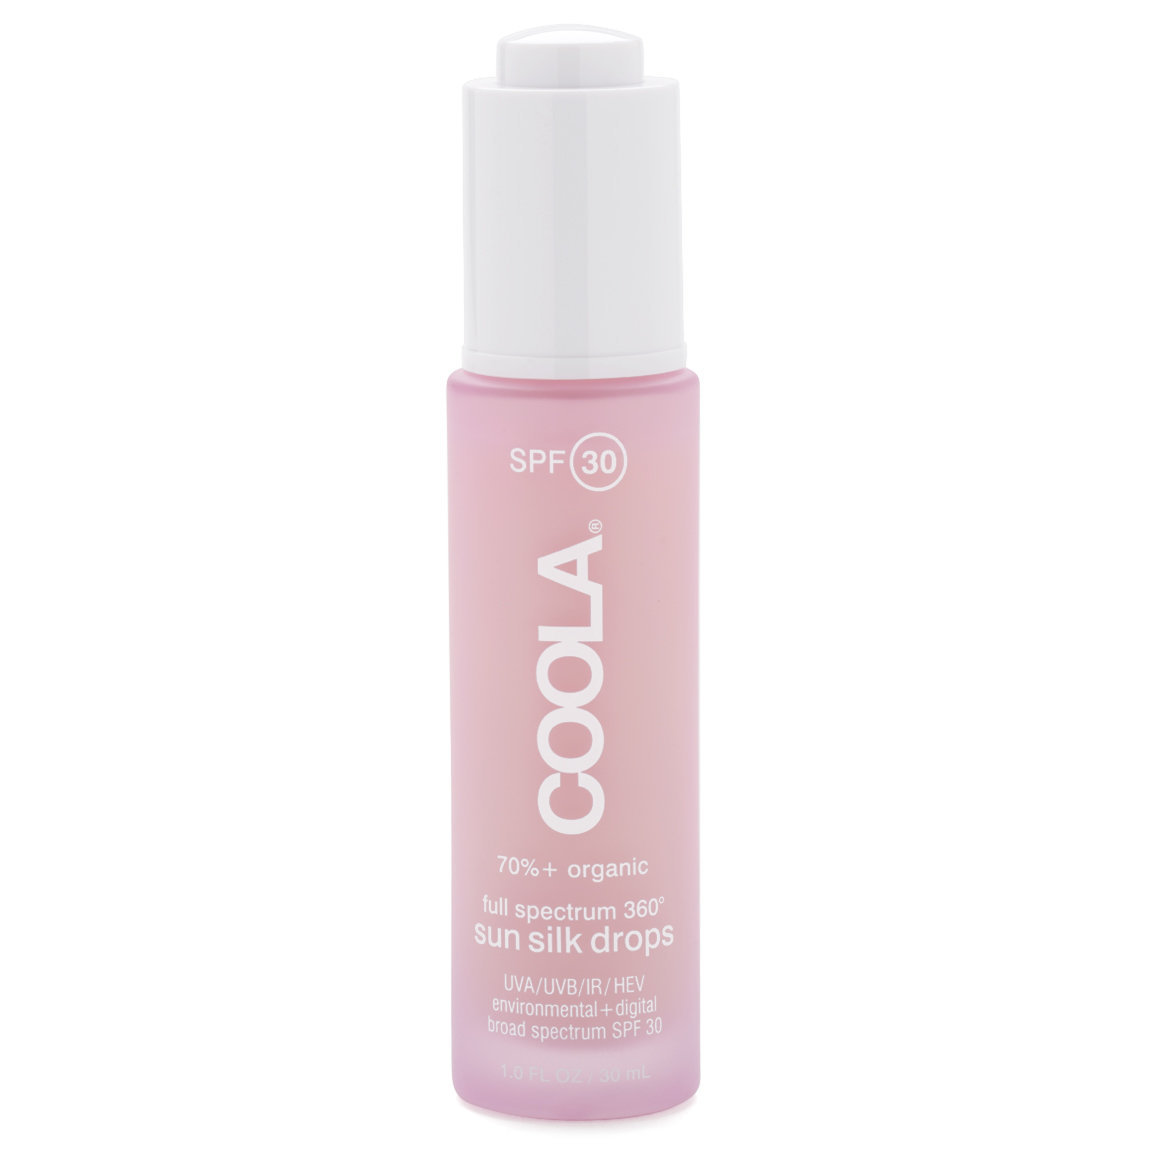 COOLA Classic Full Spectrum 360 Sun Silk Drops SPF 30 product smear.